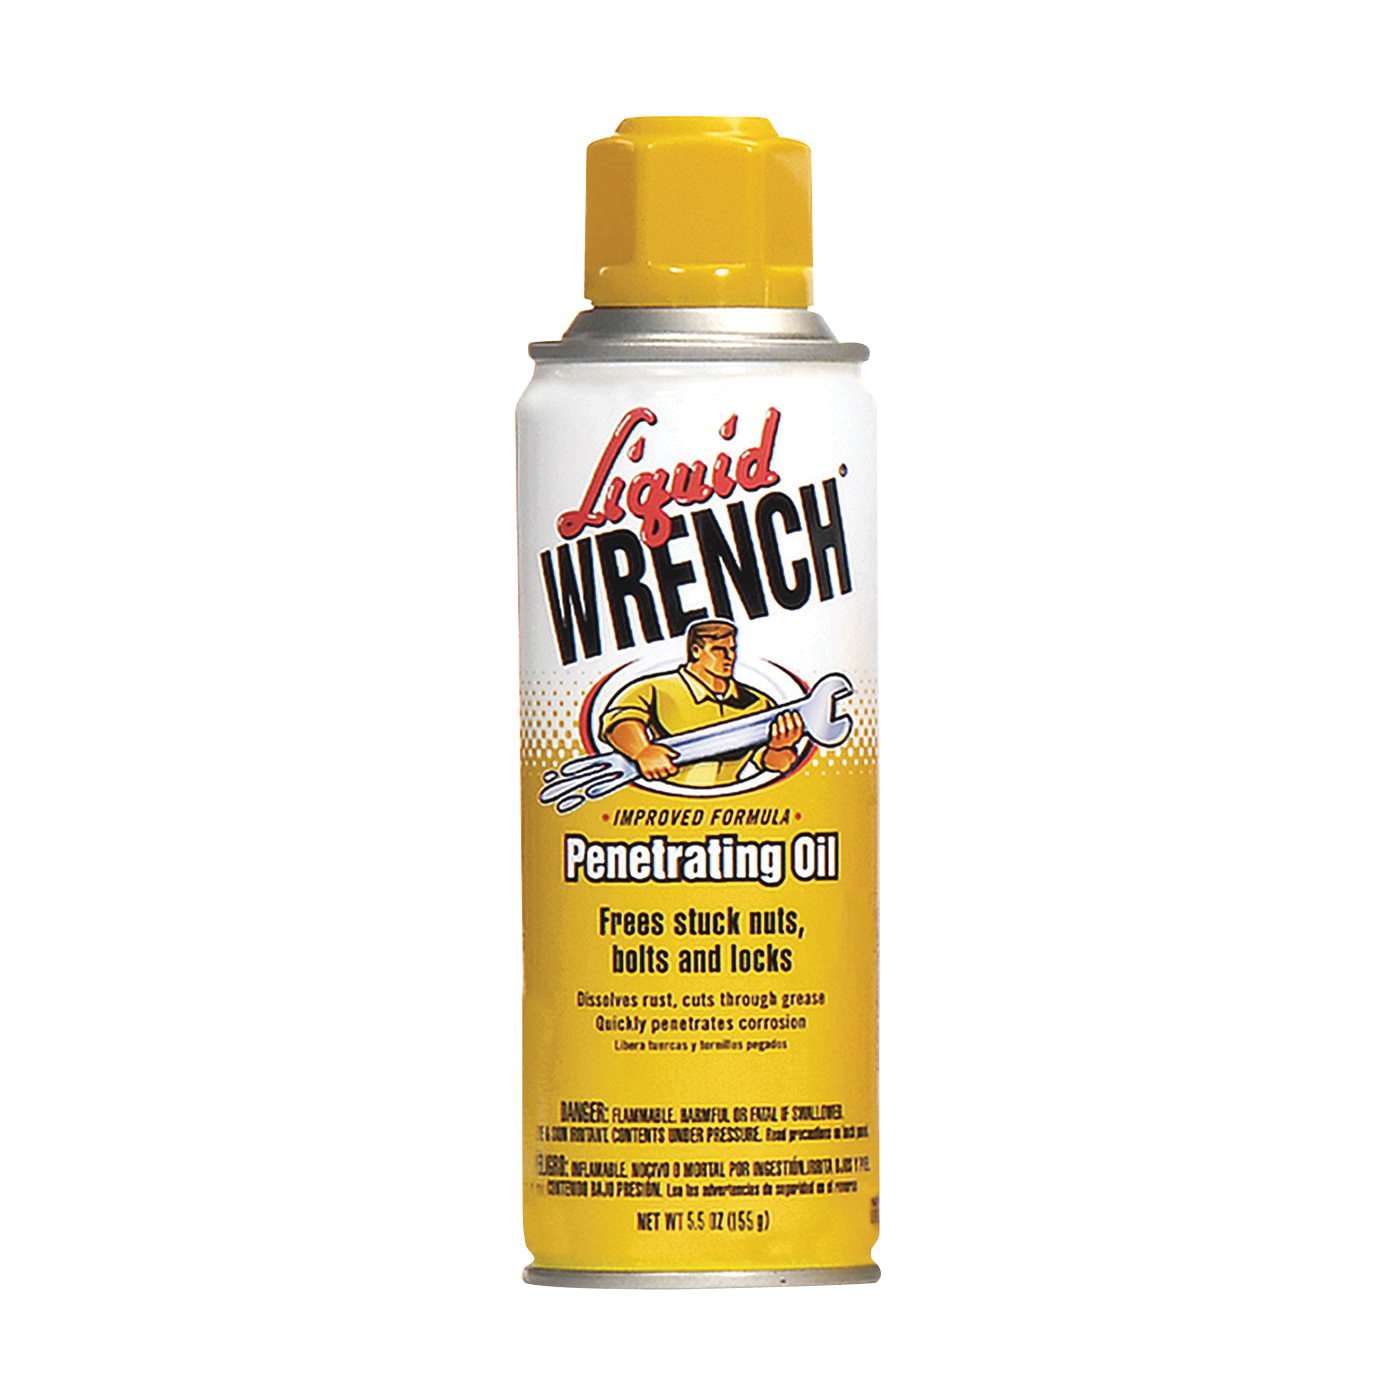 Picture of Liquid WRENCH L106 Penetrating Oil, 6 oz Package, Aerosol Can, Opaque Liquid, Fragrance